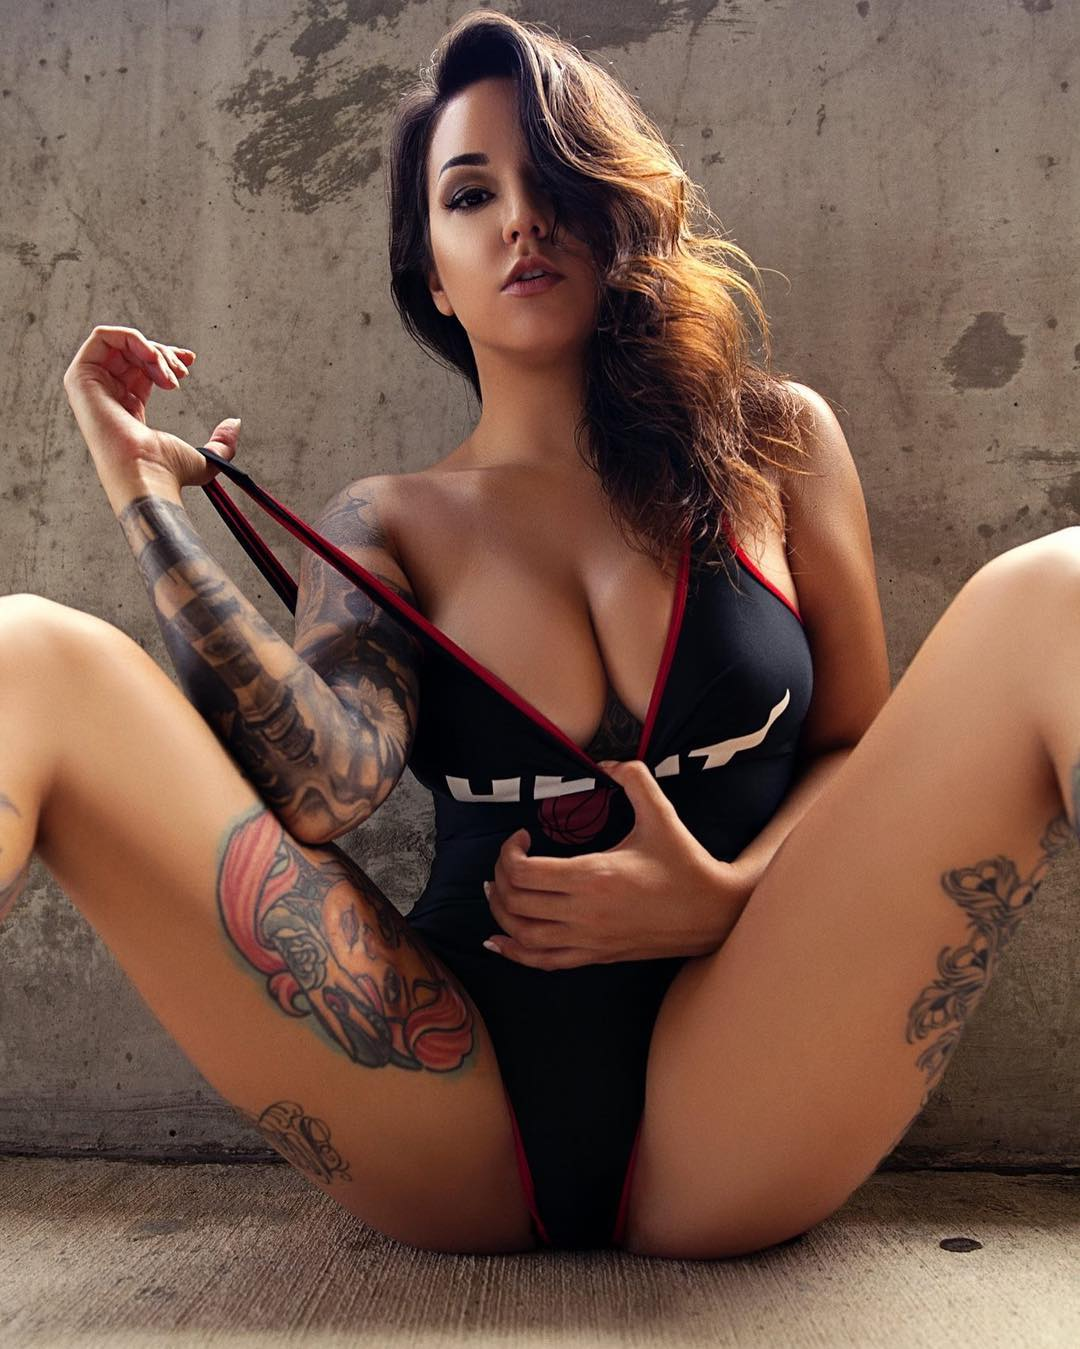 S*Xy Inked Girls Gallery Page 4 Of 10 Ideas And Designs